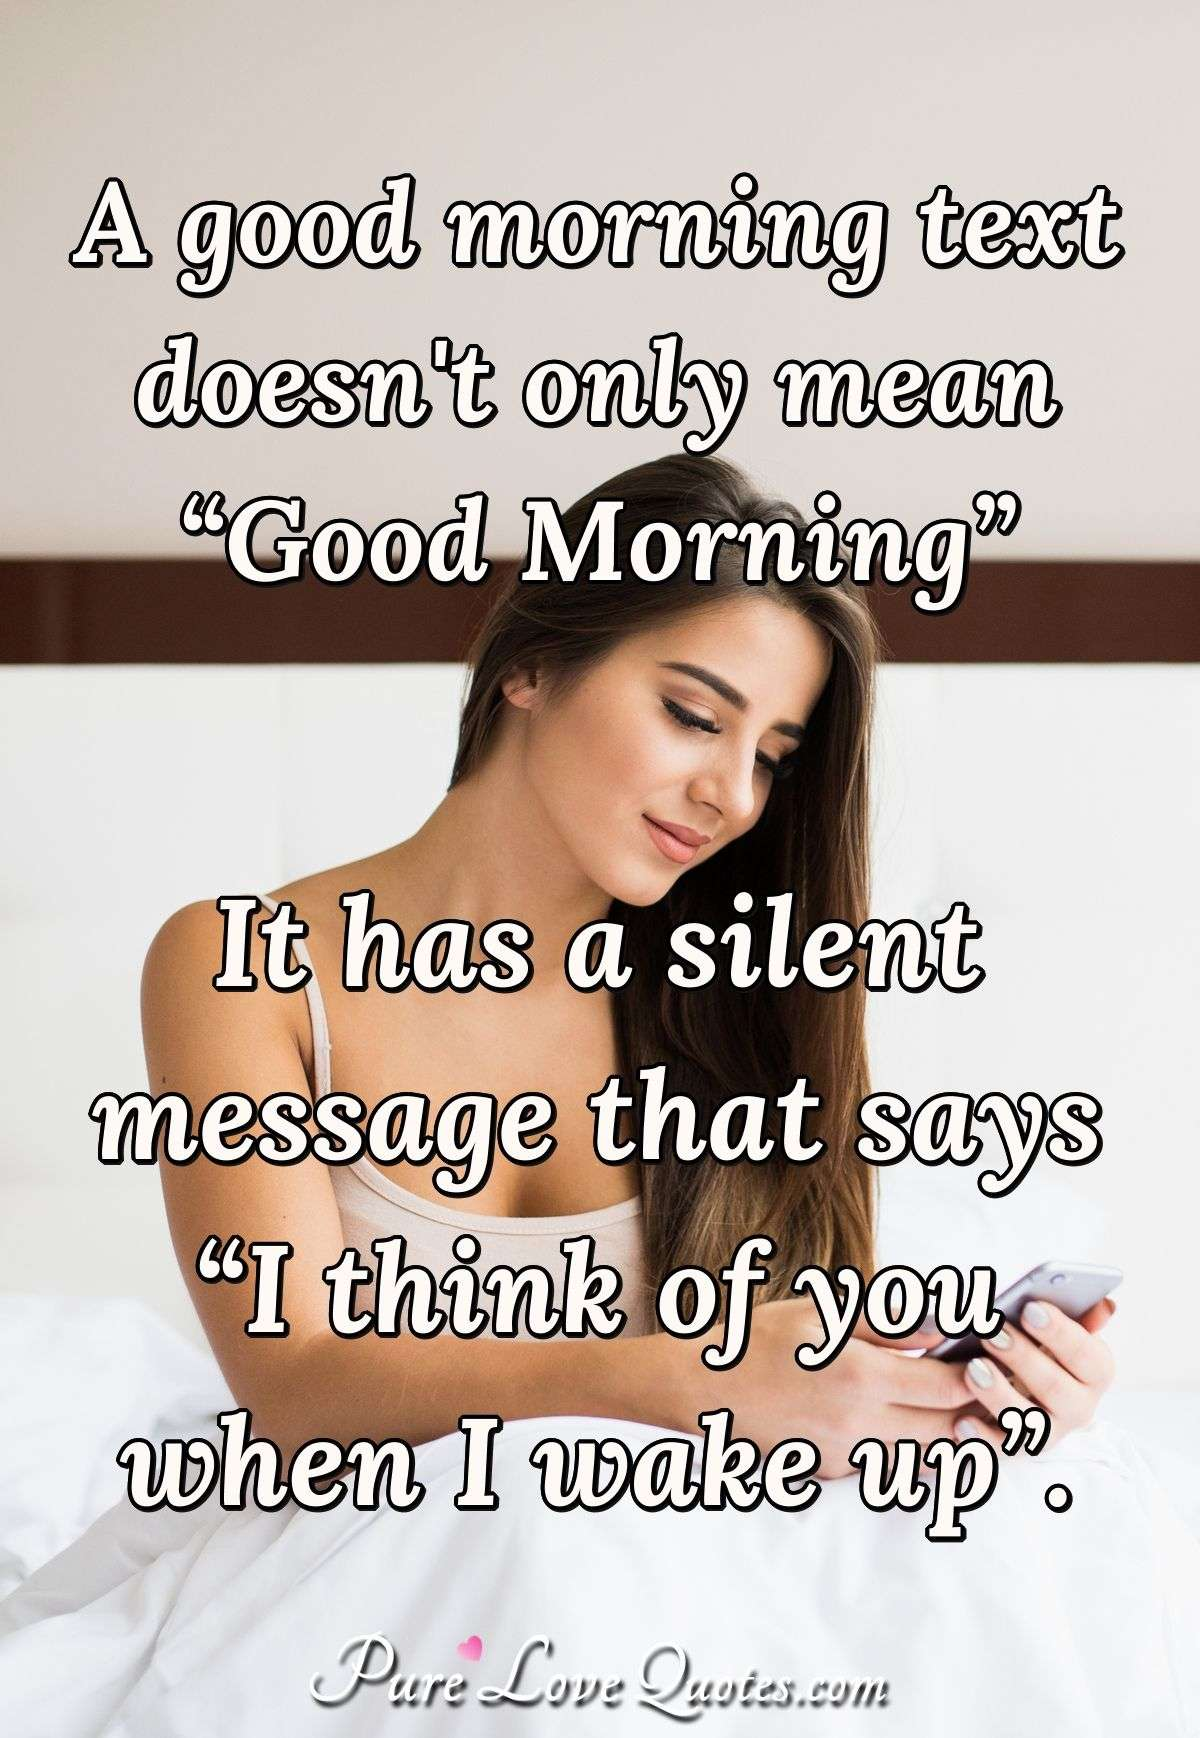 "A good morning text doesn't only mean ""Good Morning."" It has a silent message that says ""I think of you when I wake up."" - Anonymous"